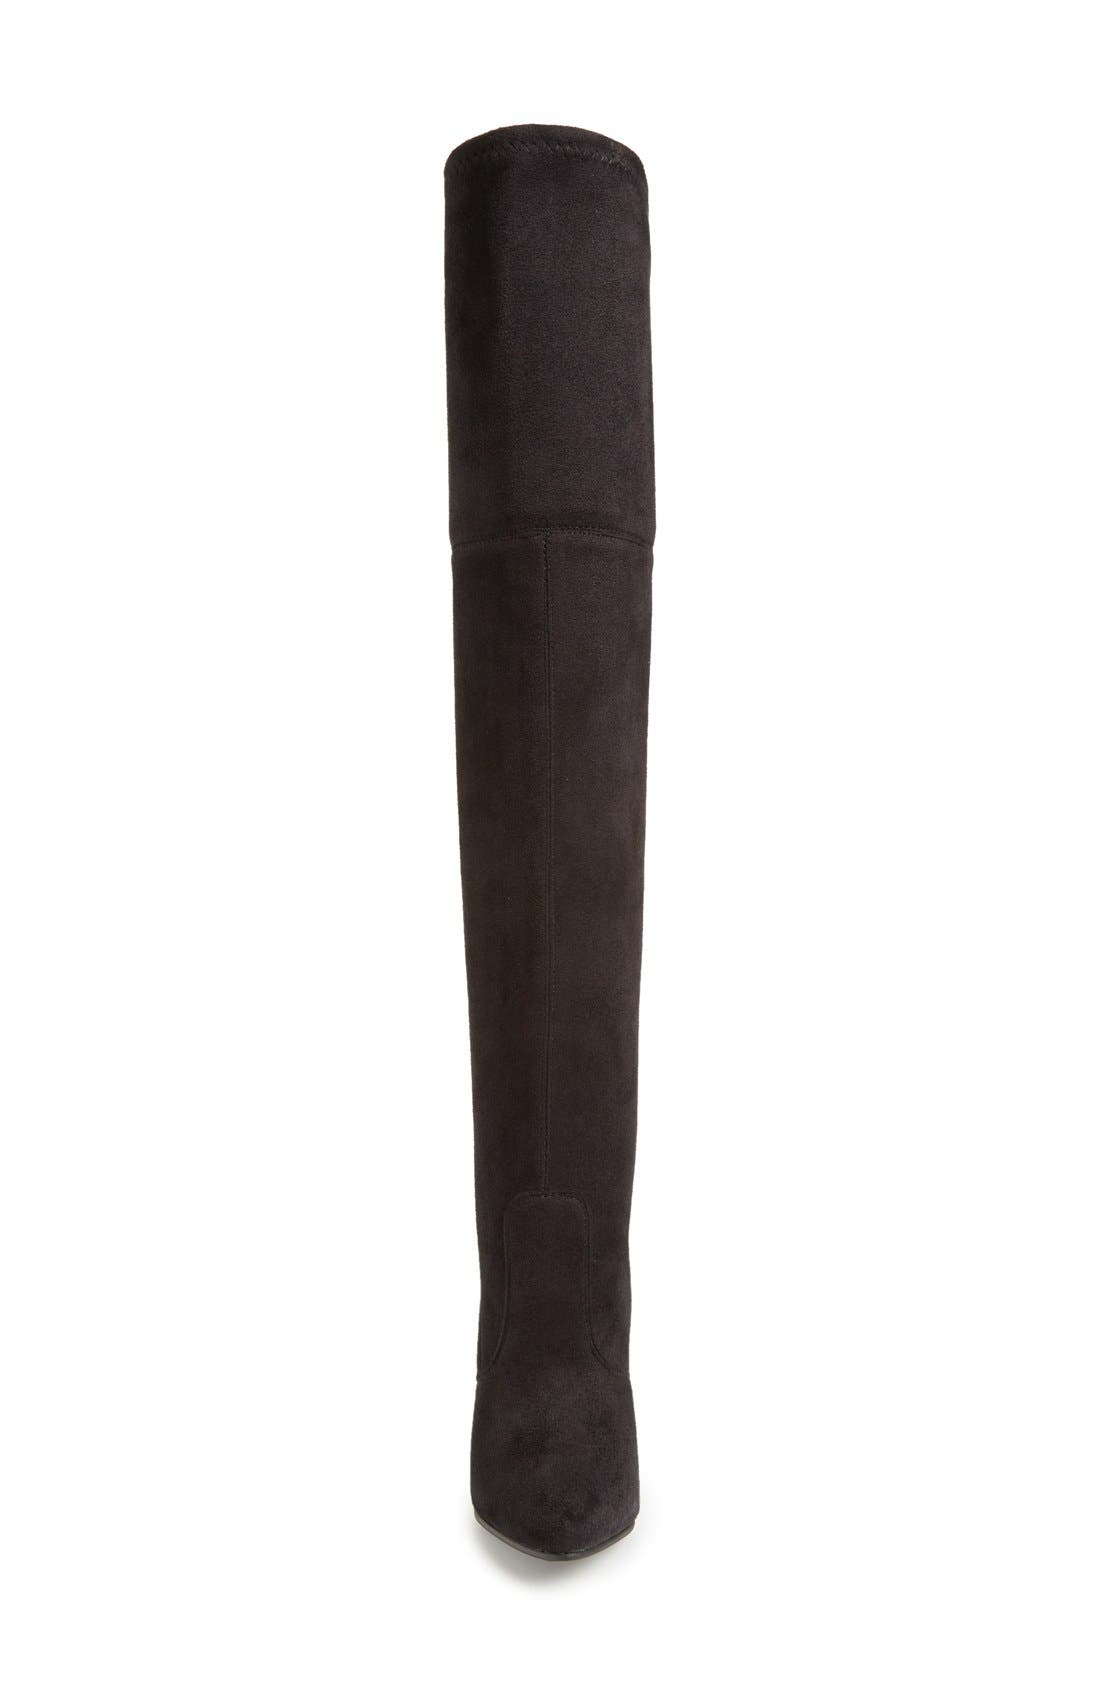 Alternate Image 3  - Steve Madden 'Rocking' Over the Knee Boot (Women)